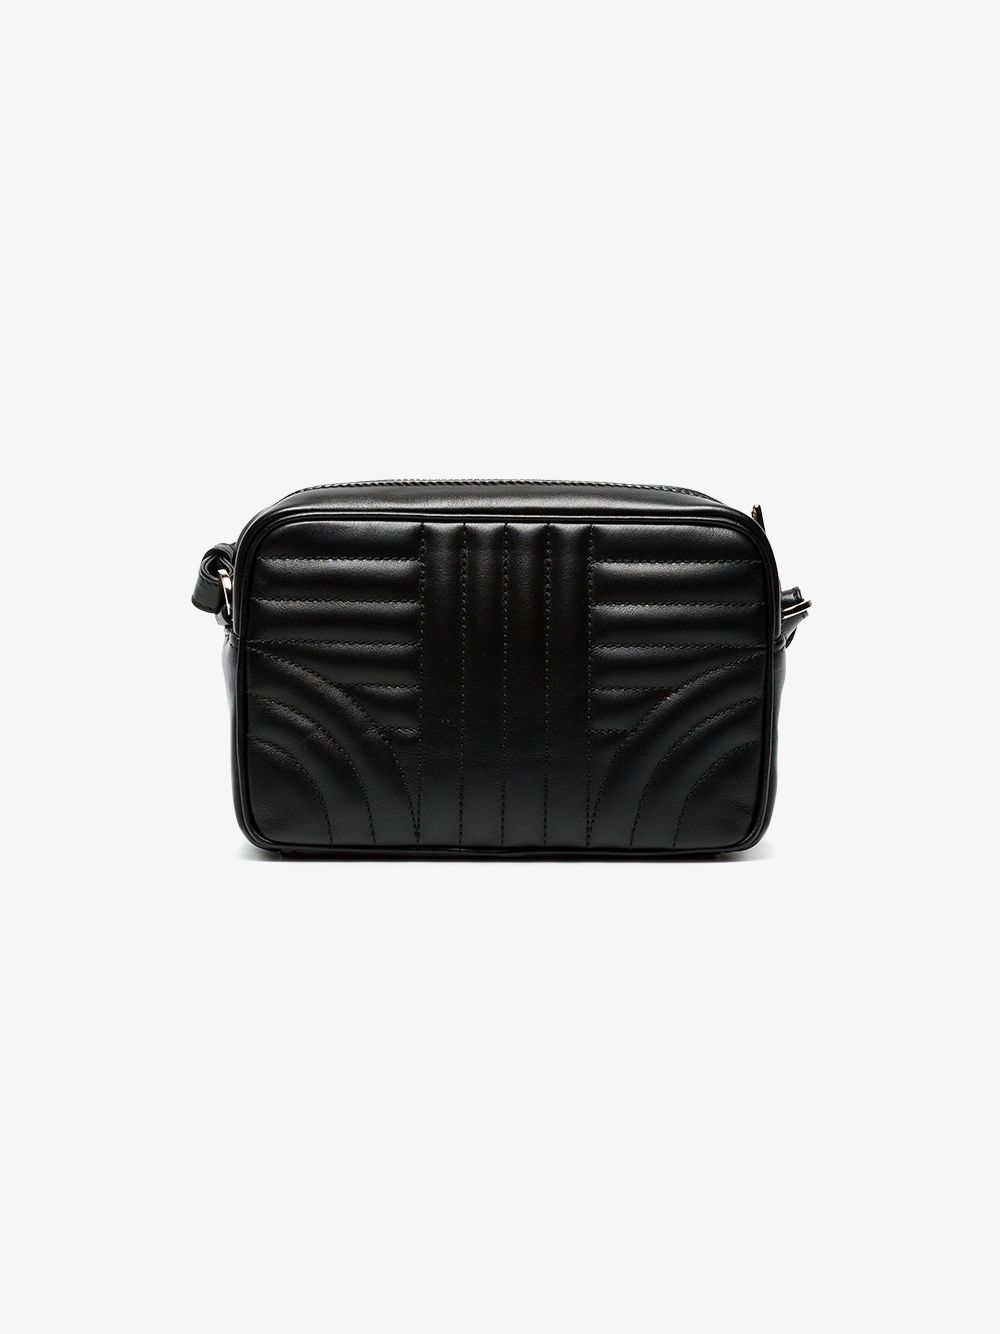 hight resolution of prada black diagramme leather cross body bag satchels cross body bags browns